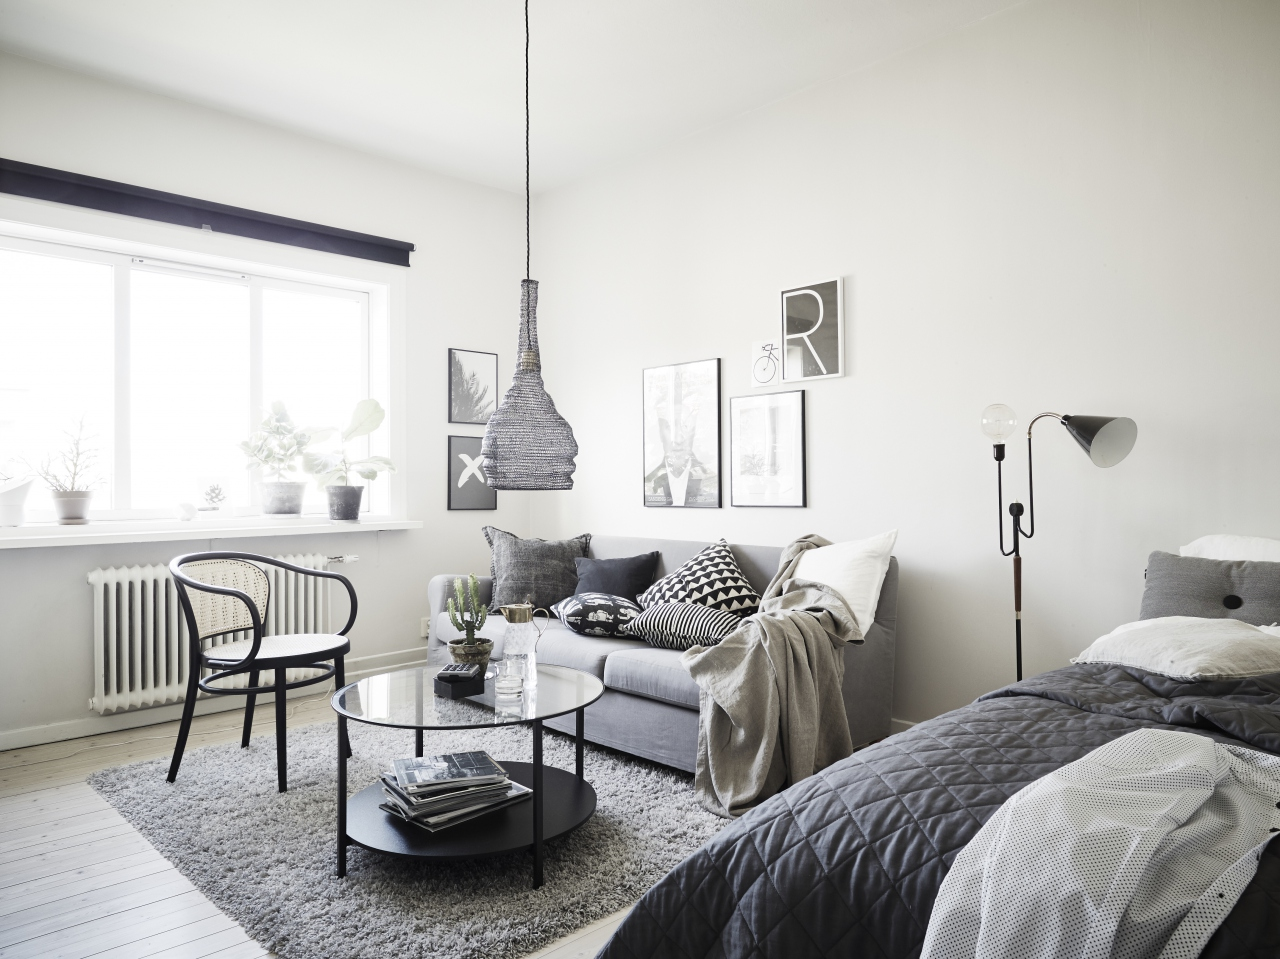 Beautiful home in grey coco lapine designcoco lapine design for Small one room apartment ideas